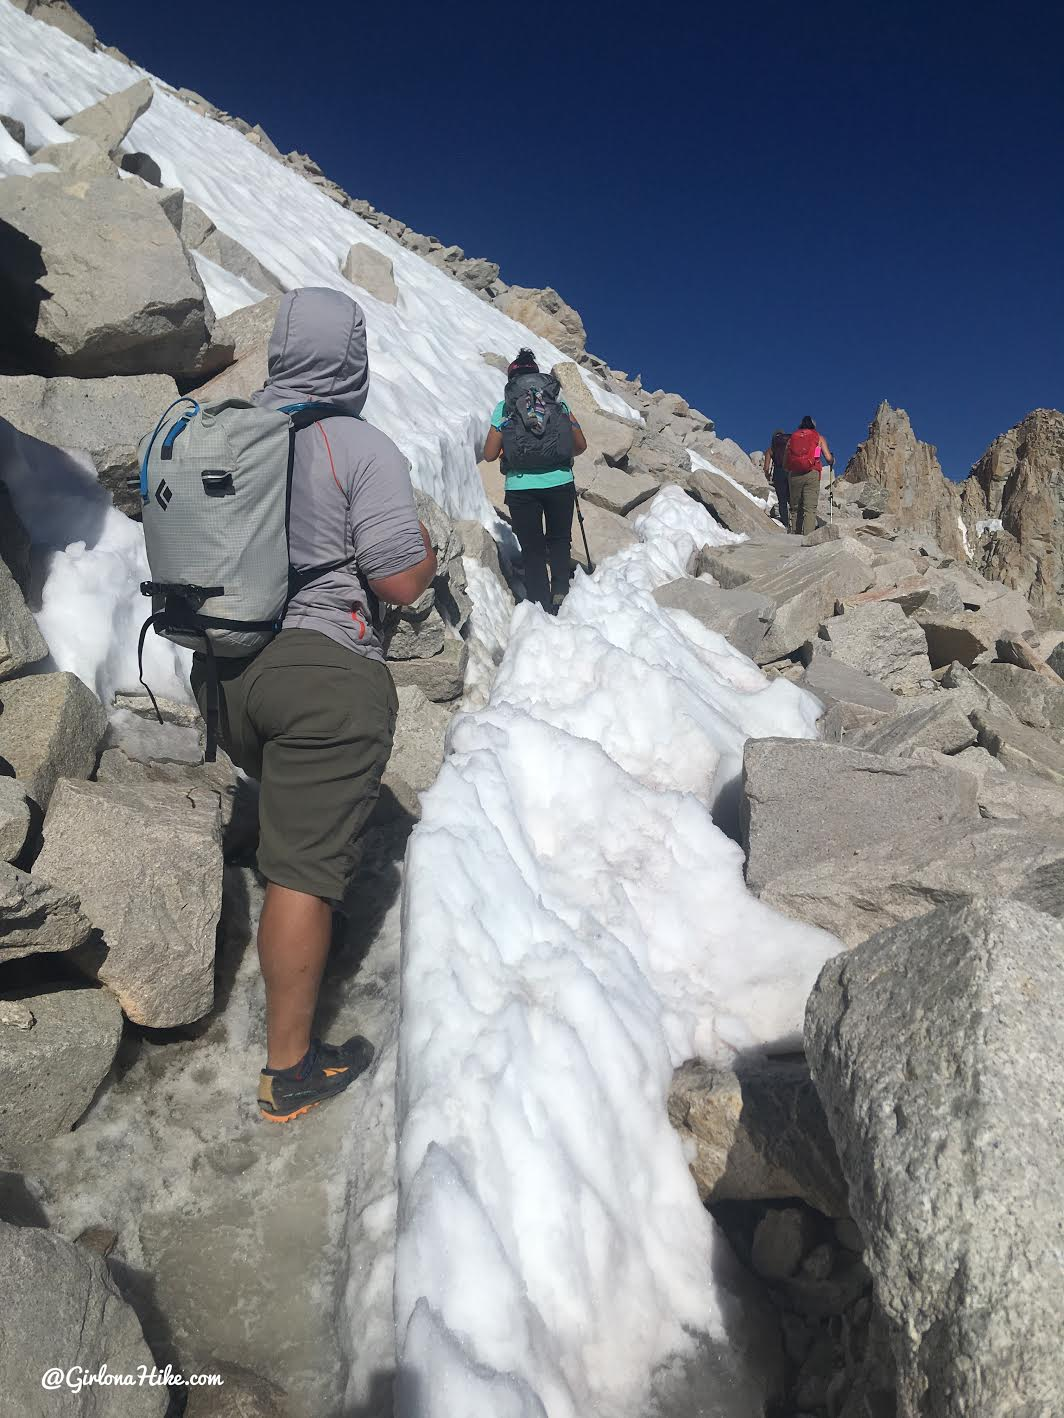 Hiking to Mt.Whitney, Hiking Mt.Whitney in 2020, Hiking the highest point in the lower 48 states, hiking in California